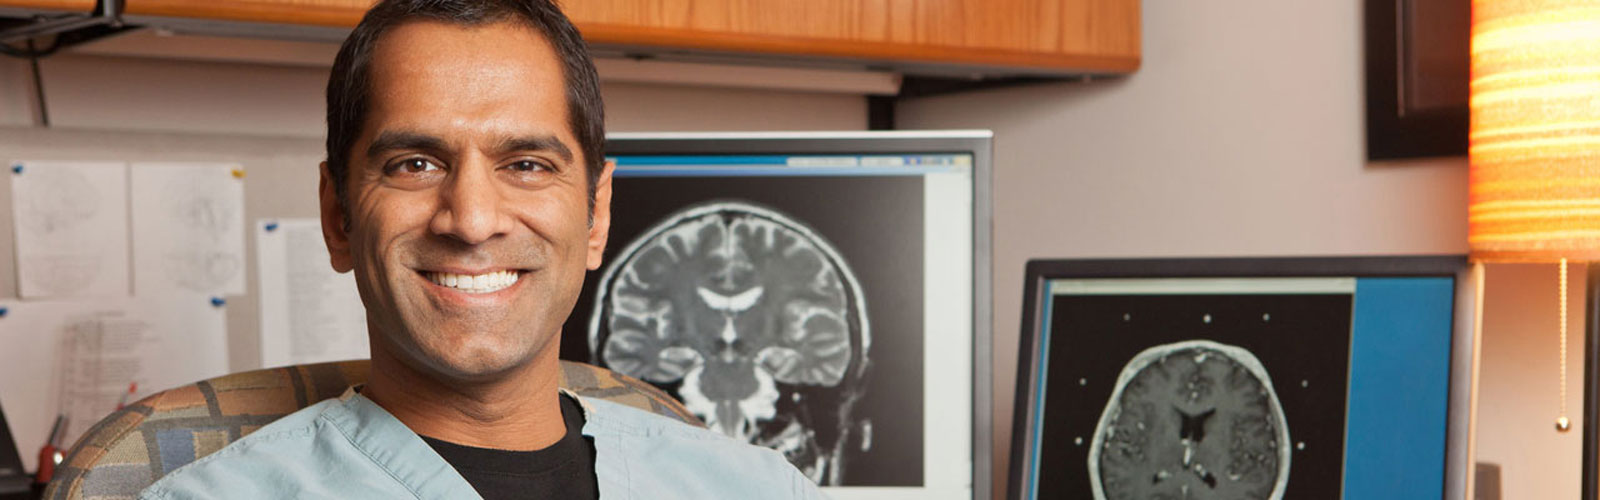 Parag G. Patil, M.D. Ph.D. - Associate Professor of Neurosurgery, Neurology, Anesthesiology and Biomedical Engineering